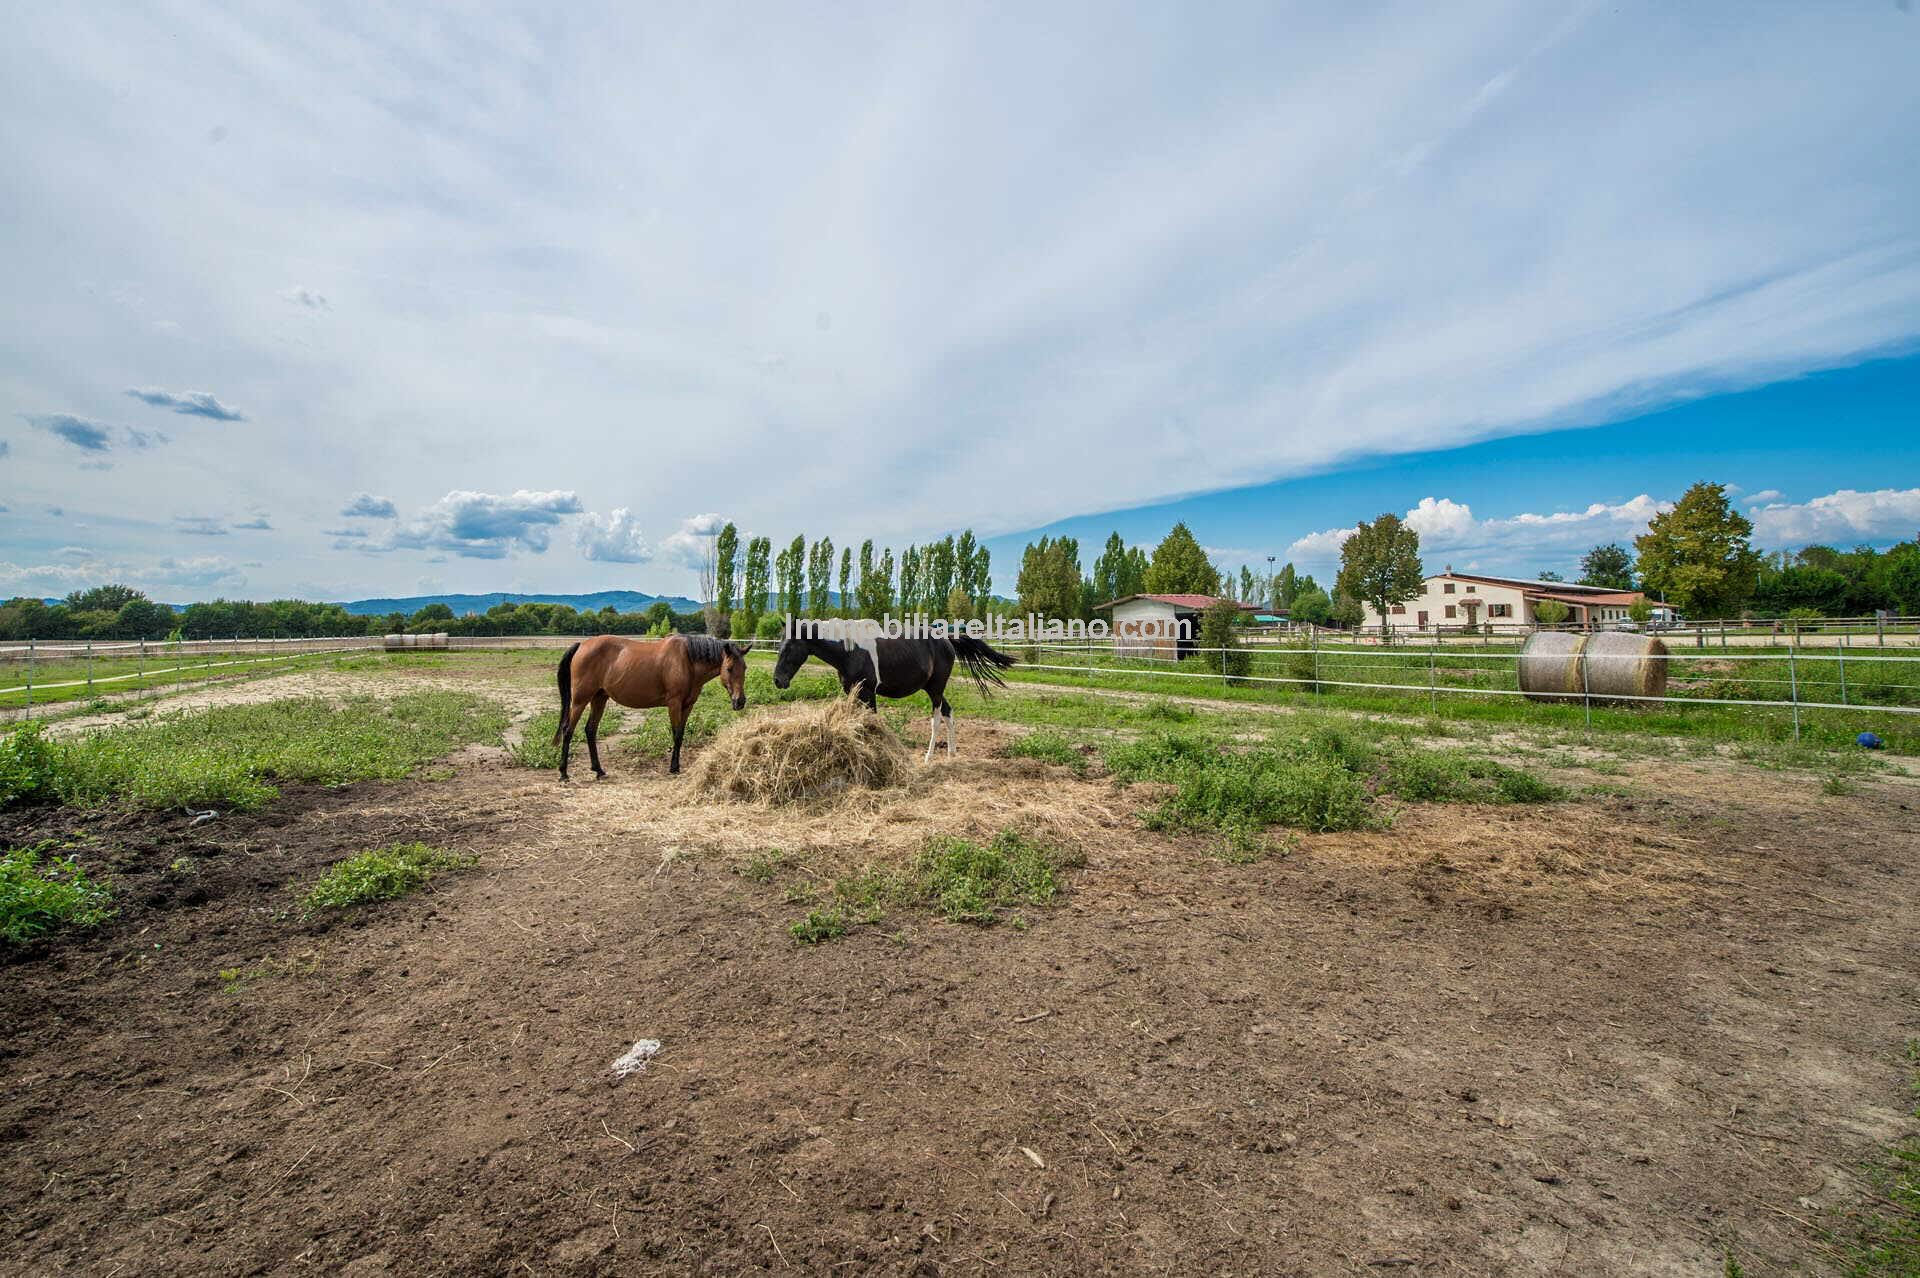 Equestrian property for sale Arezzo Tuscany Italy